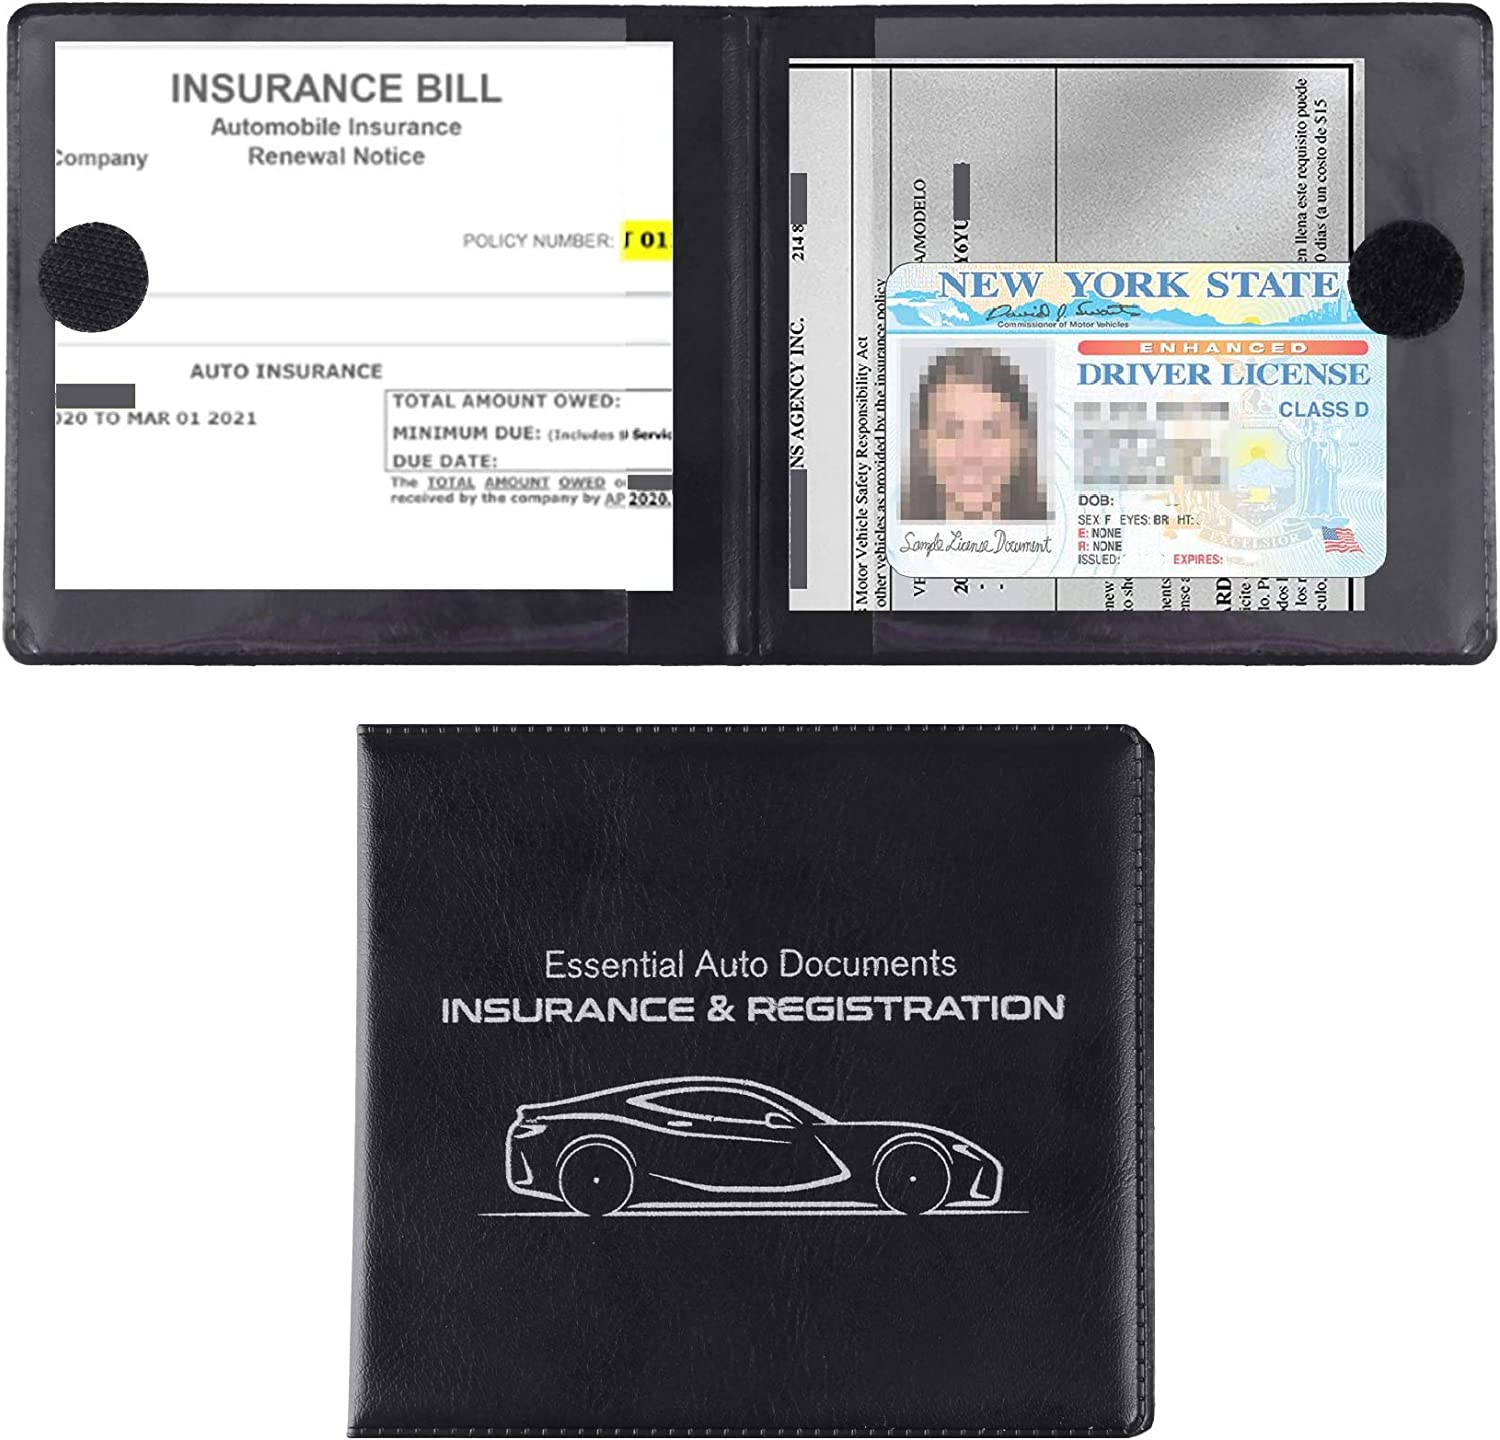 MICUB Auto Car Essential,Car Registration and Insurance Card Documents Holder 2-Pack,For Car,Truck,SUV and Other Vehicle,Case Wallet for Car Documents Organizer(Black)